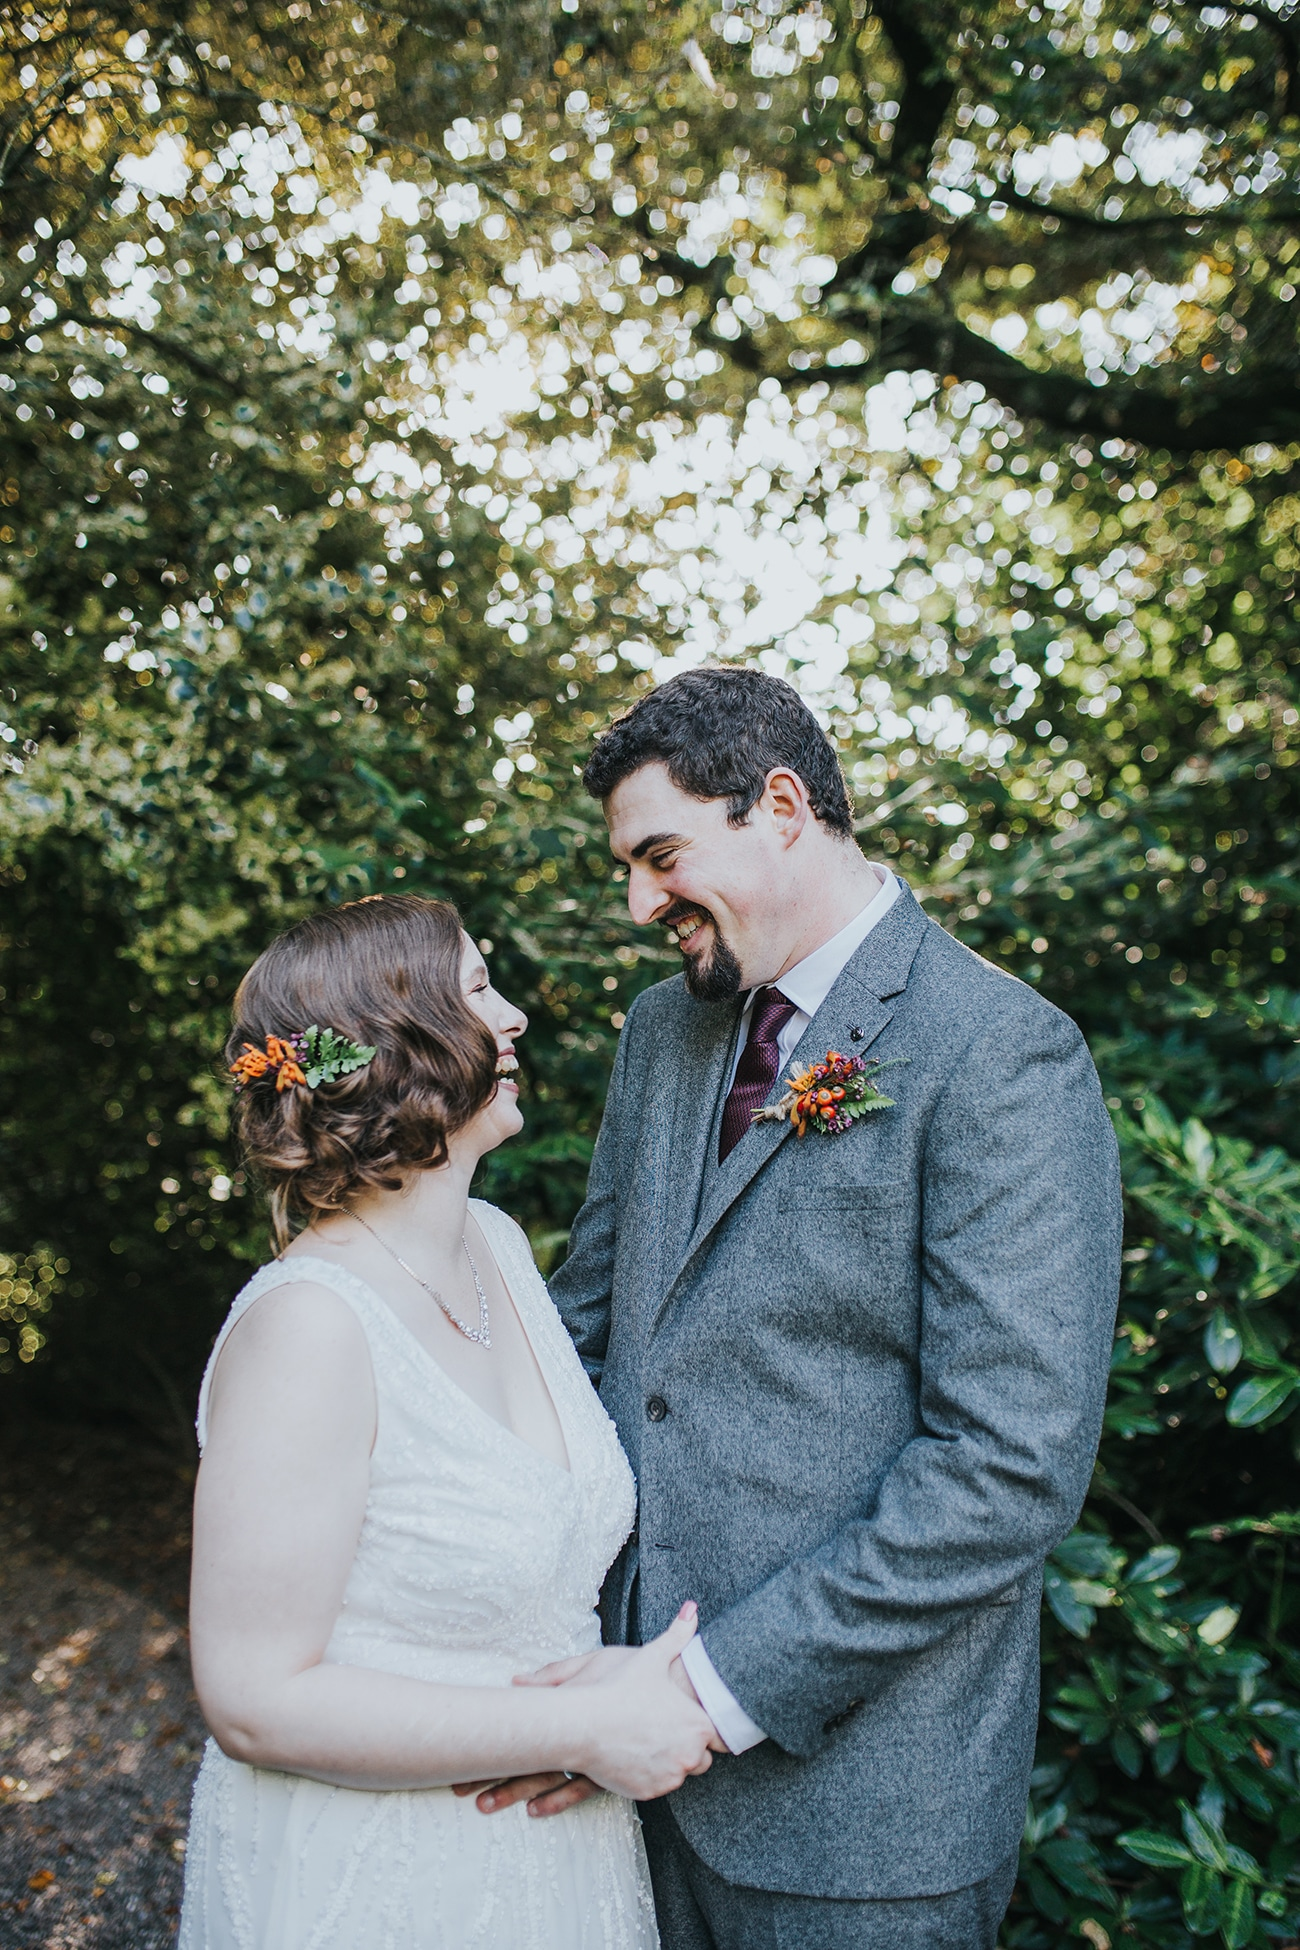 Bride and Groom Wedding Photo Inspiration at Pendrell Hall Wedding Venue West Midlands